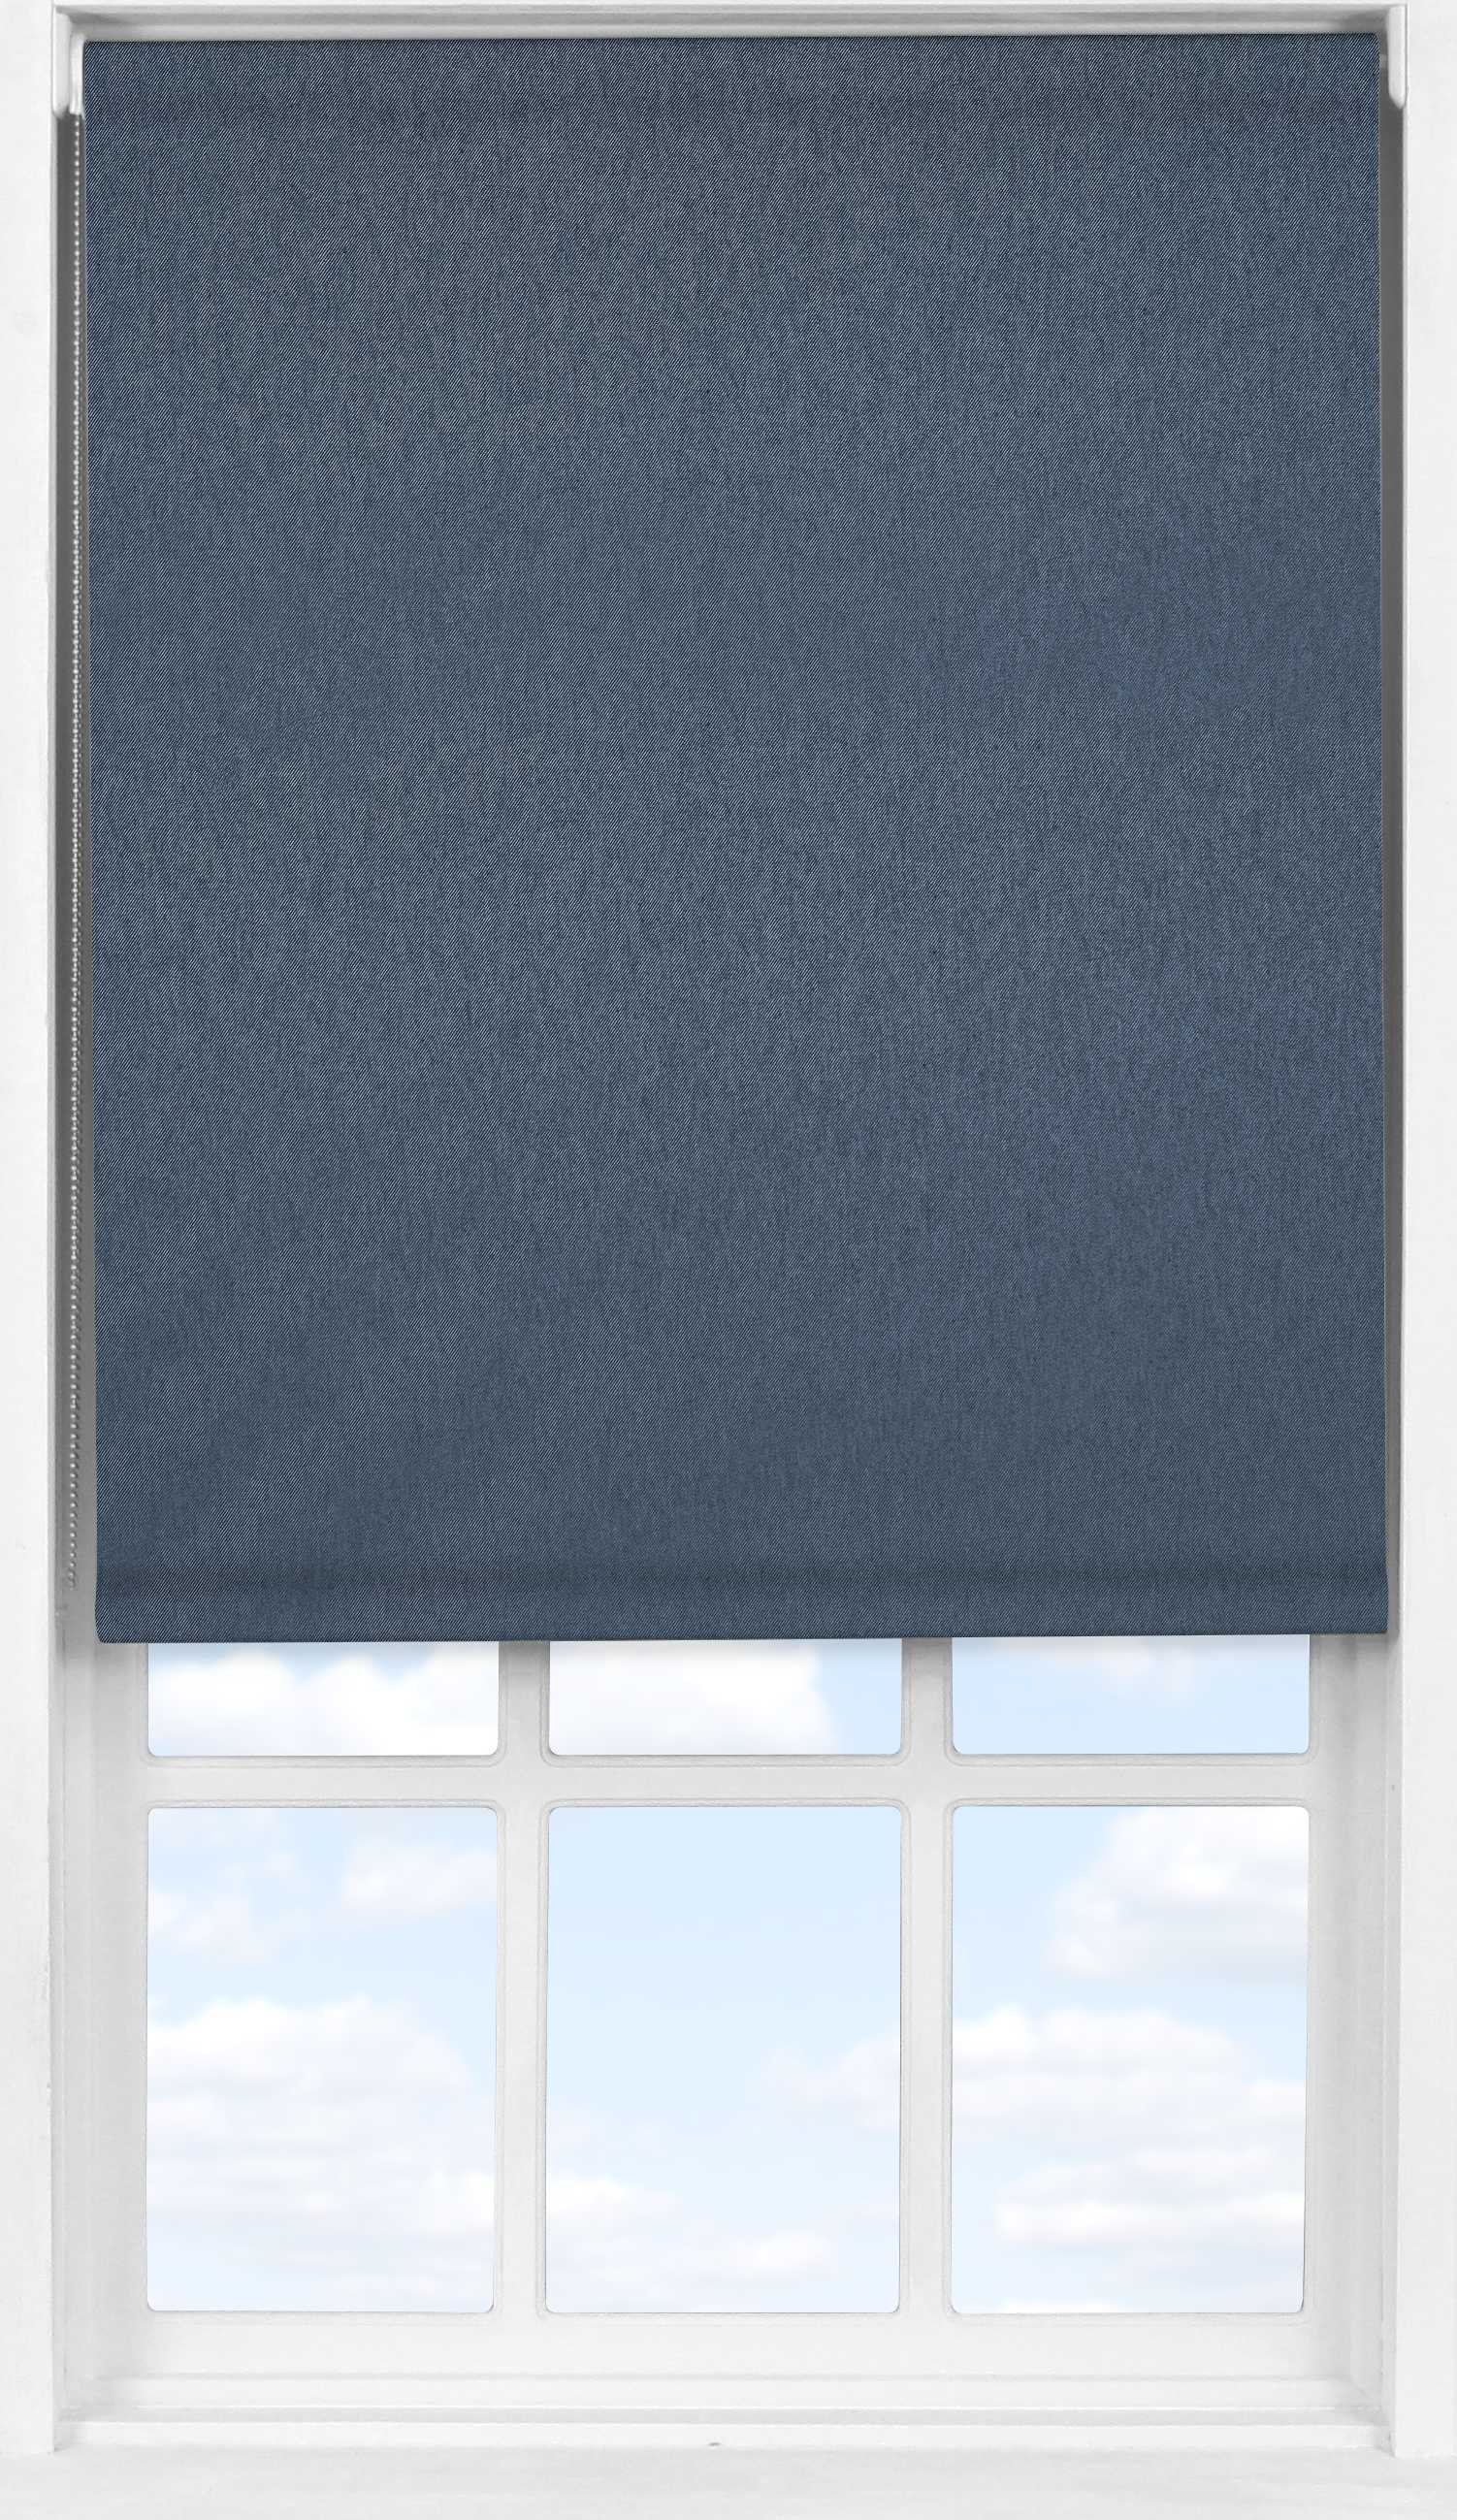 Easifit Roller Blind in Pacific Translucent